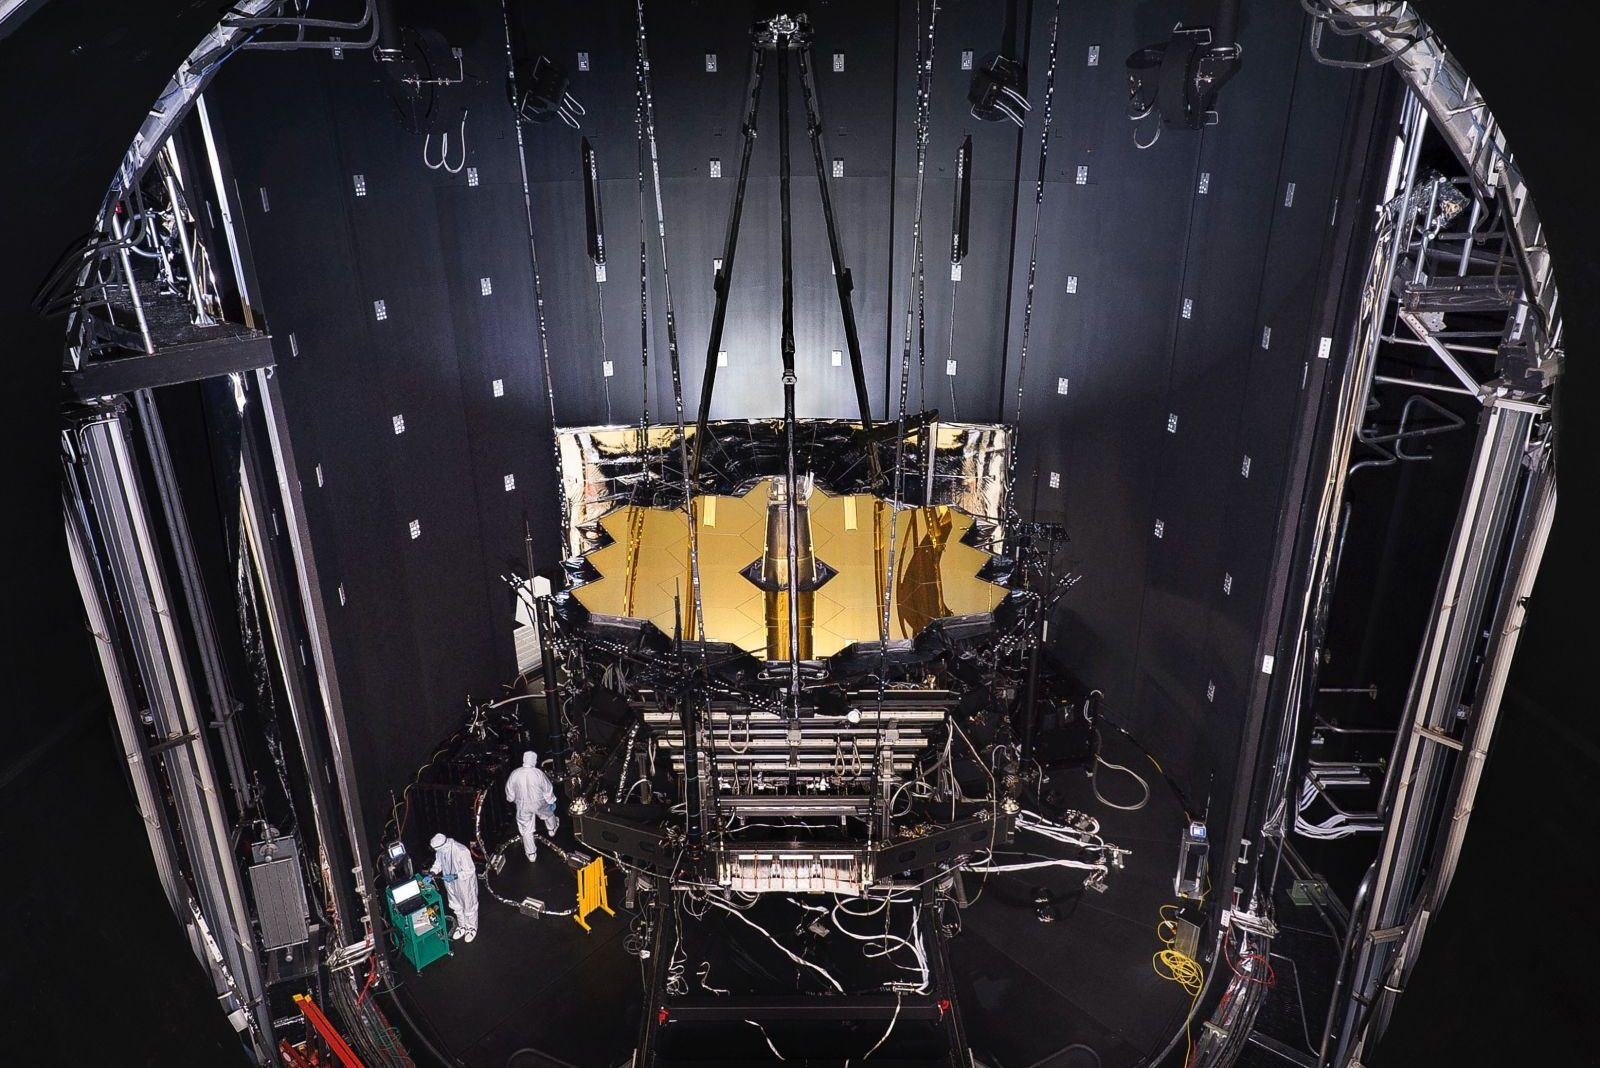 NASA's James Webb Space Telescope hangs from the ceiling of Chamber A at NASA's Johnson Space Center in Houston. Photo Credit: NASA/Chris Gunn